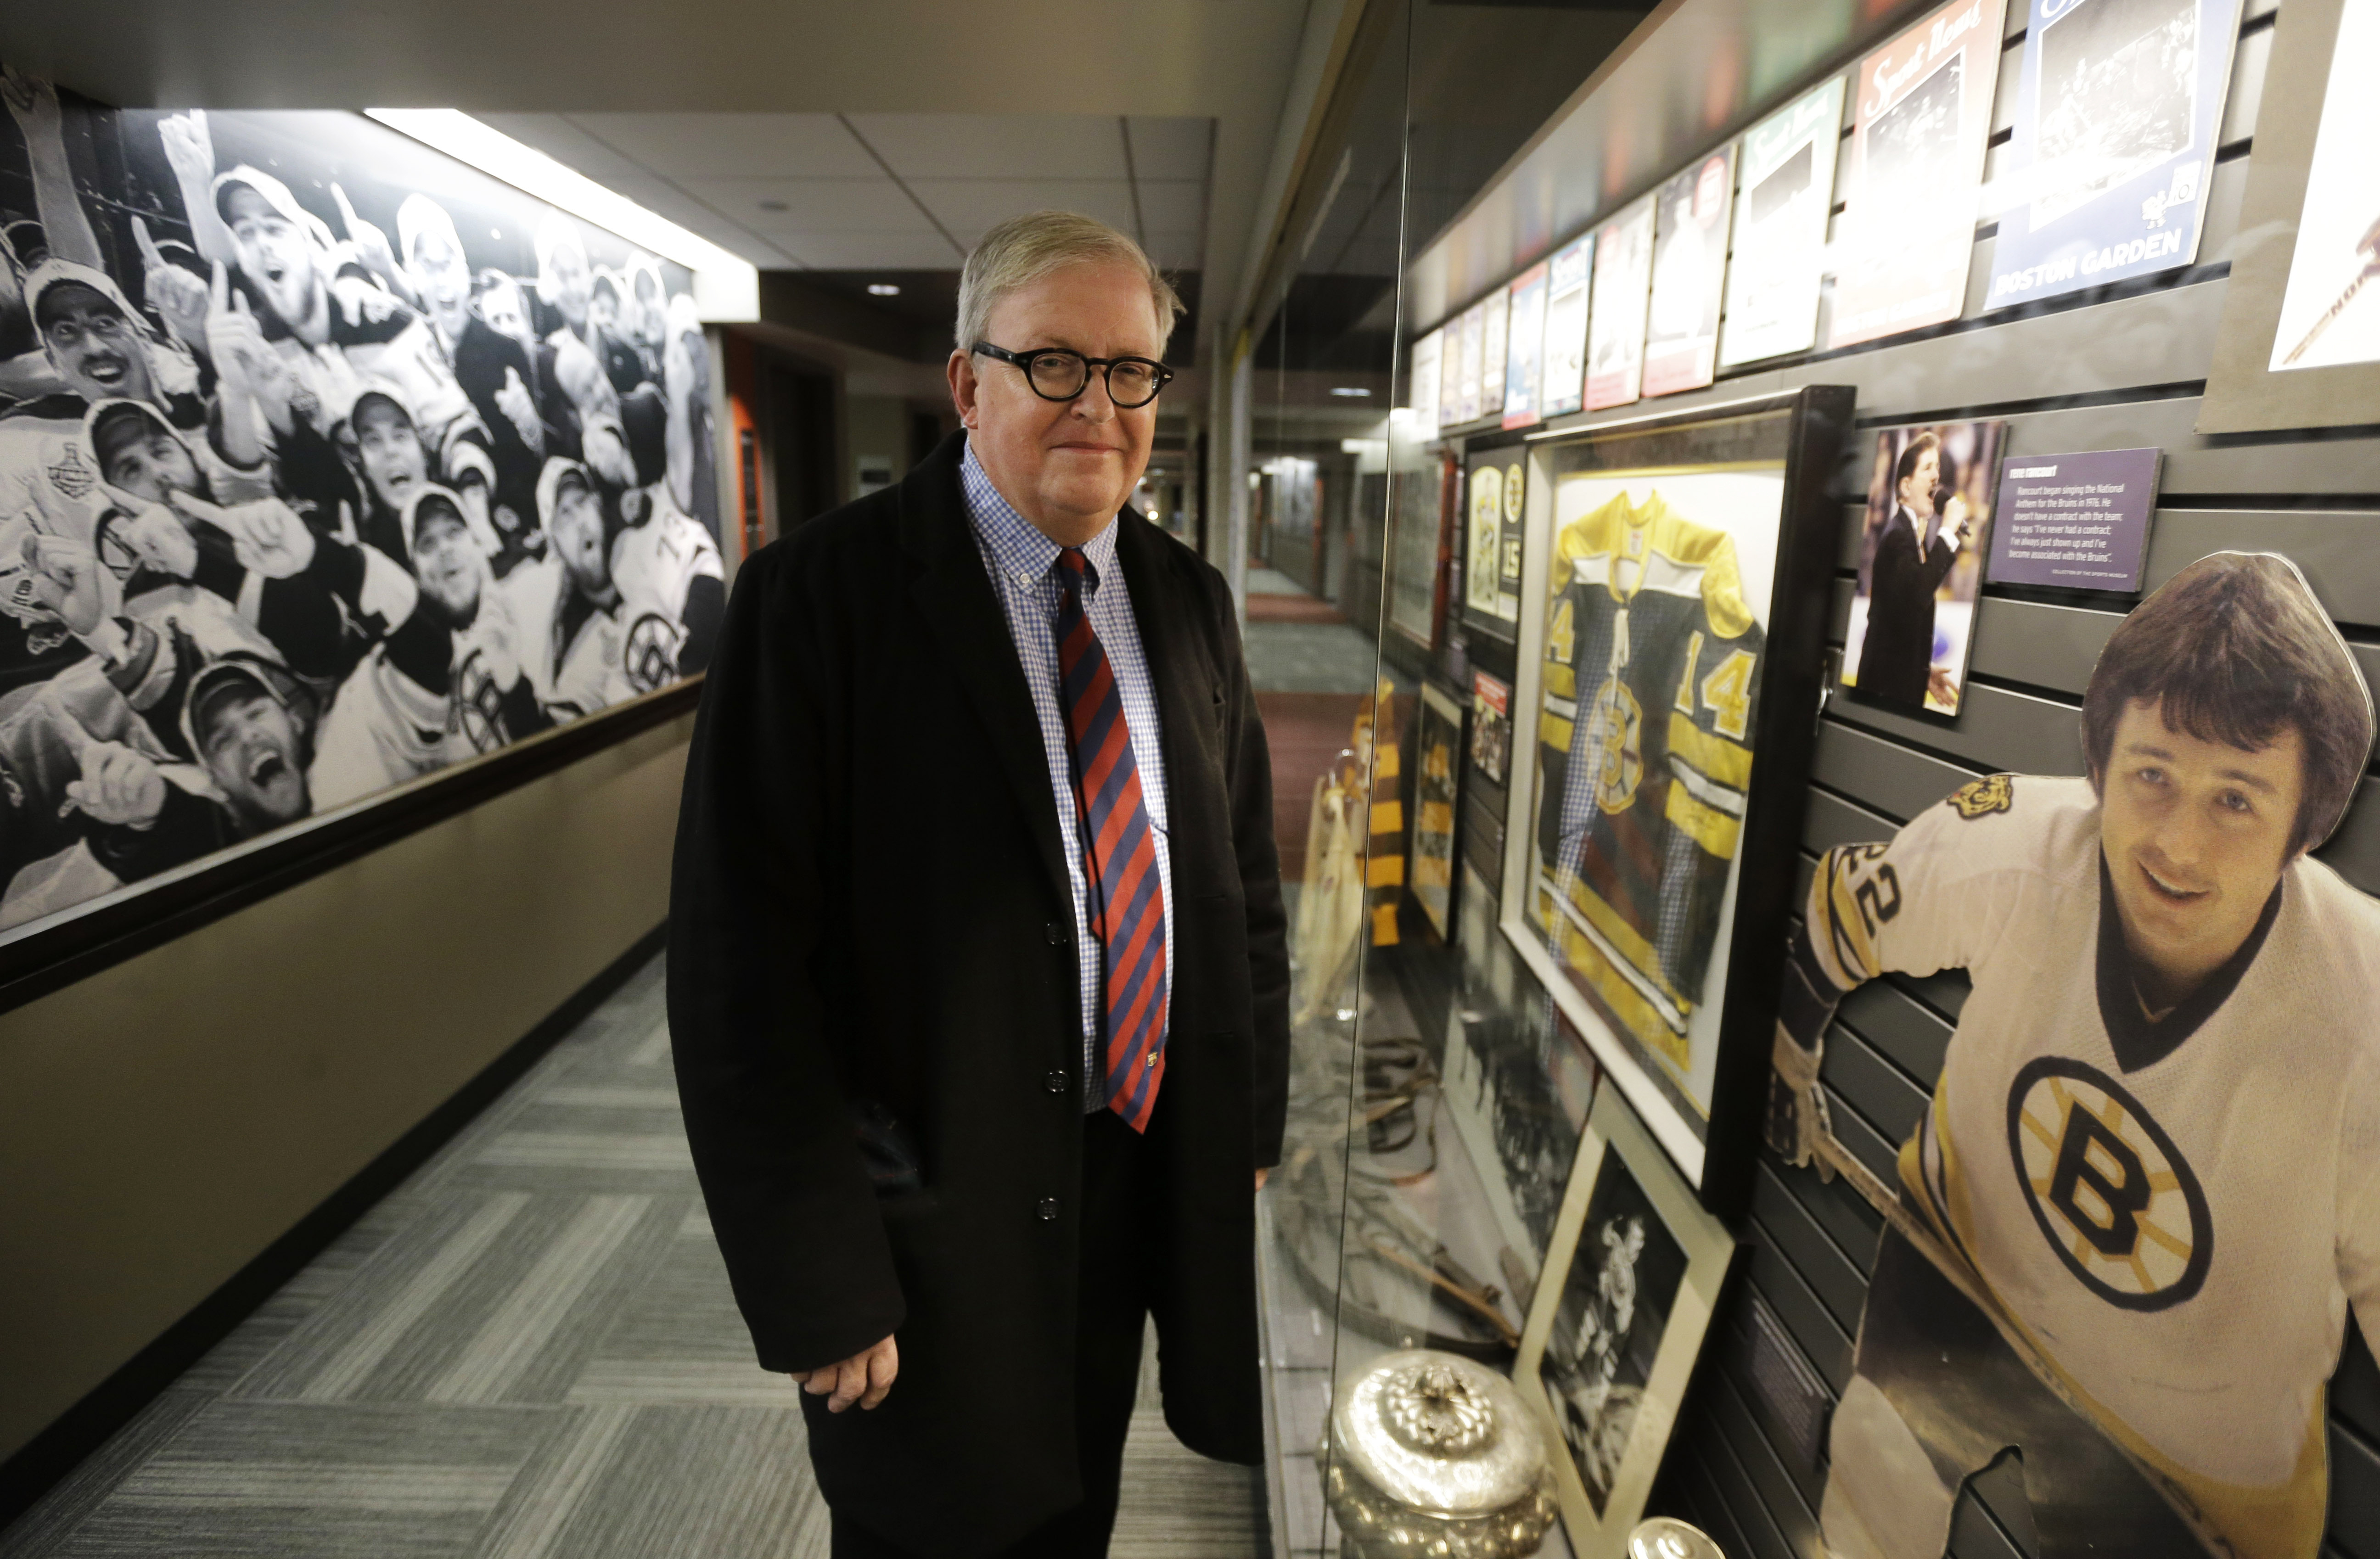 In this Thursday, Dec. 17, 2015 photo, the Sports Museum curator Richard Johnson stands near a Boston Bruins exhibit in the museum at the TD Garden, in Boston. A vast trove of New England sports artifacts is being preserved by the museum nestled inside Bo